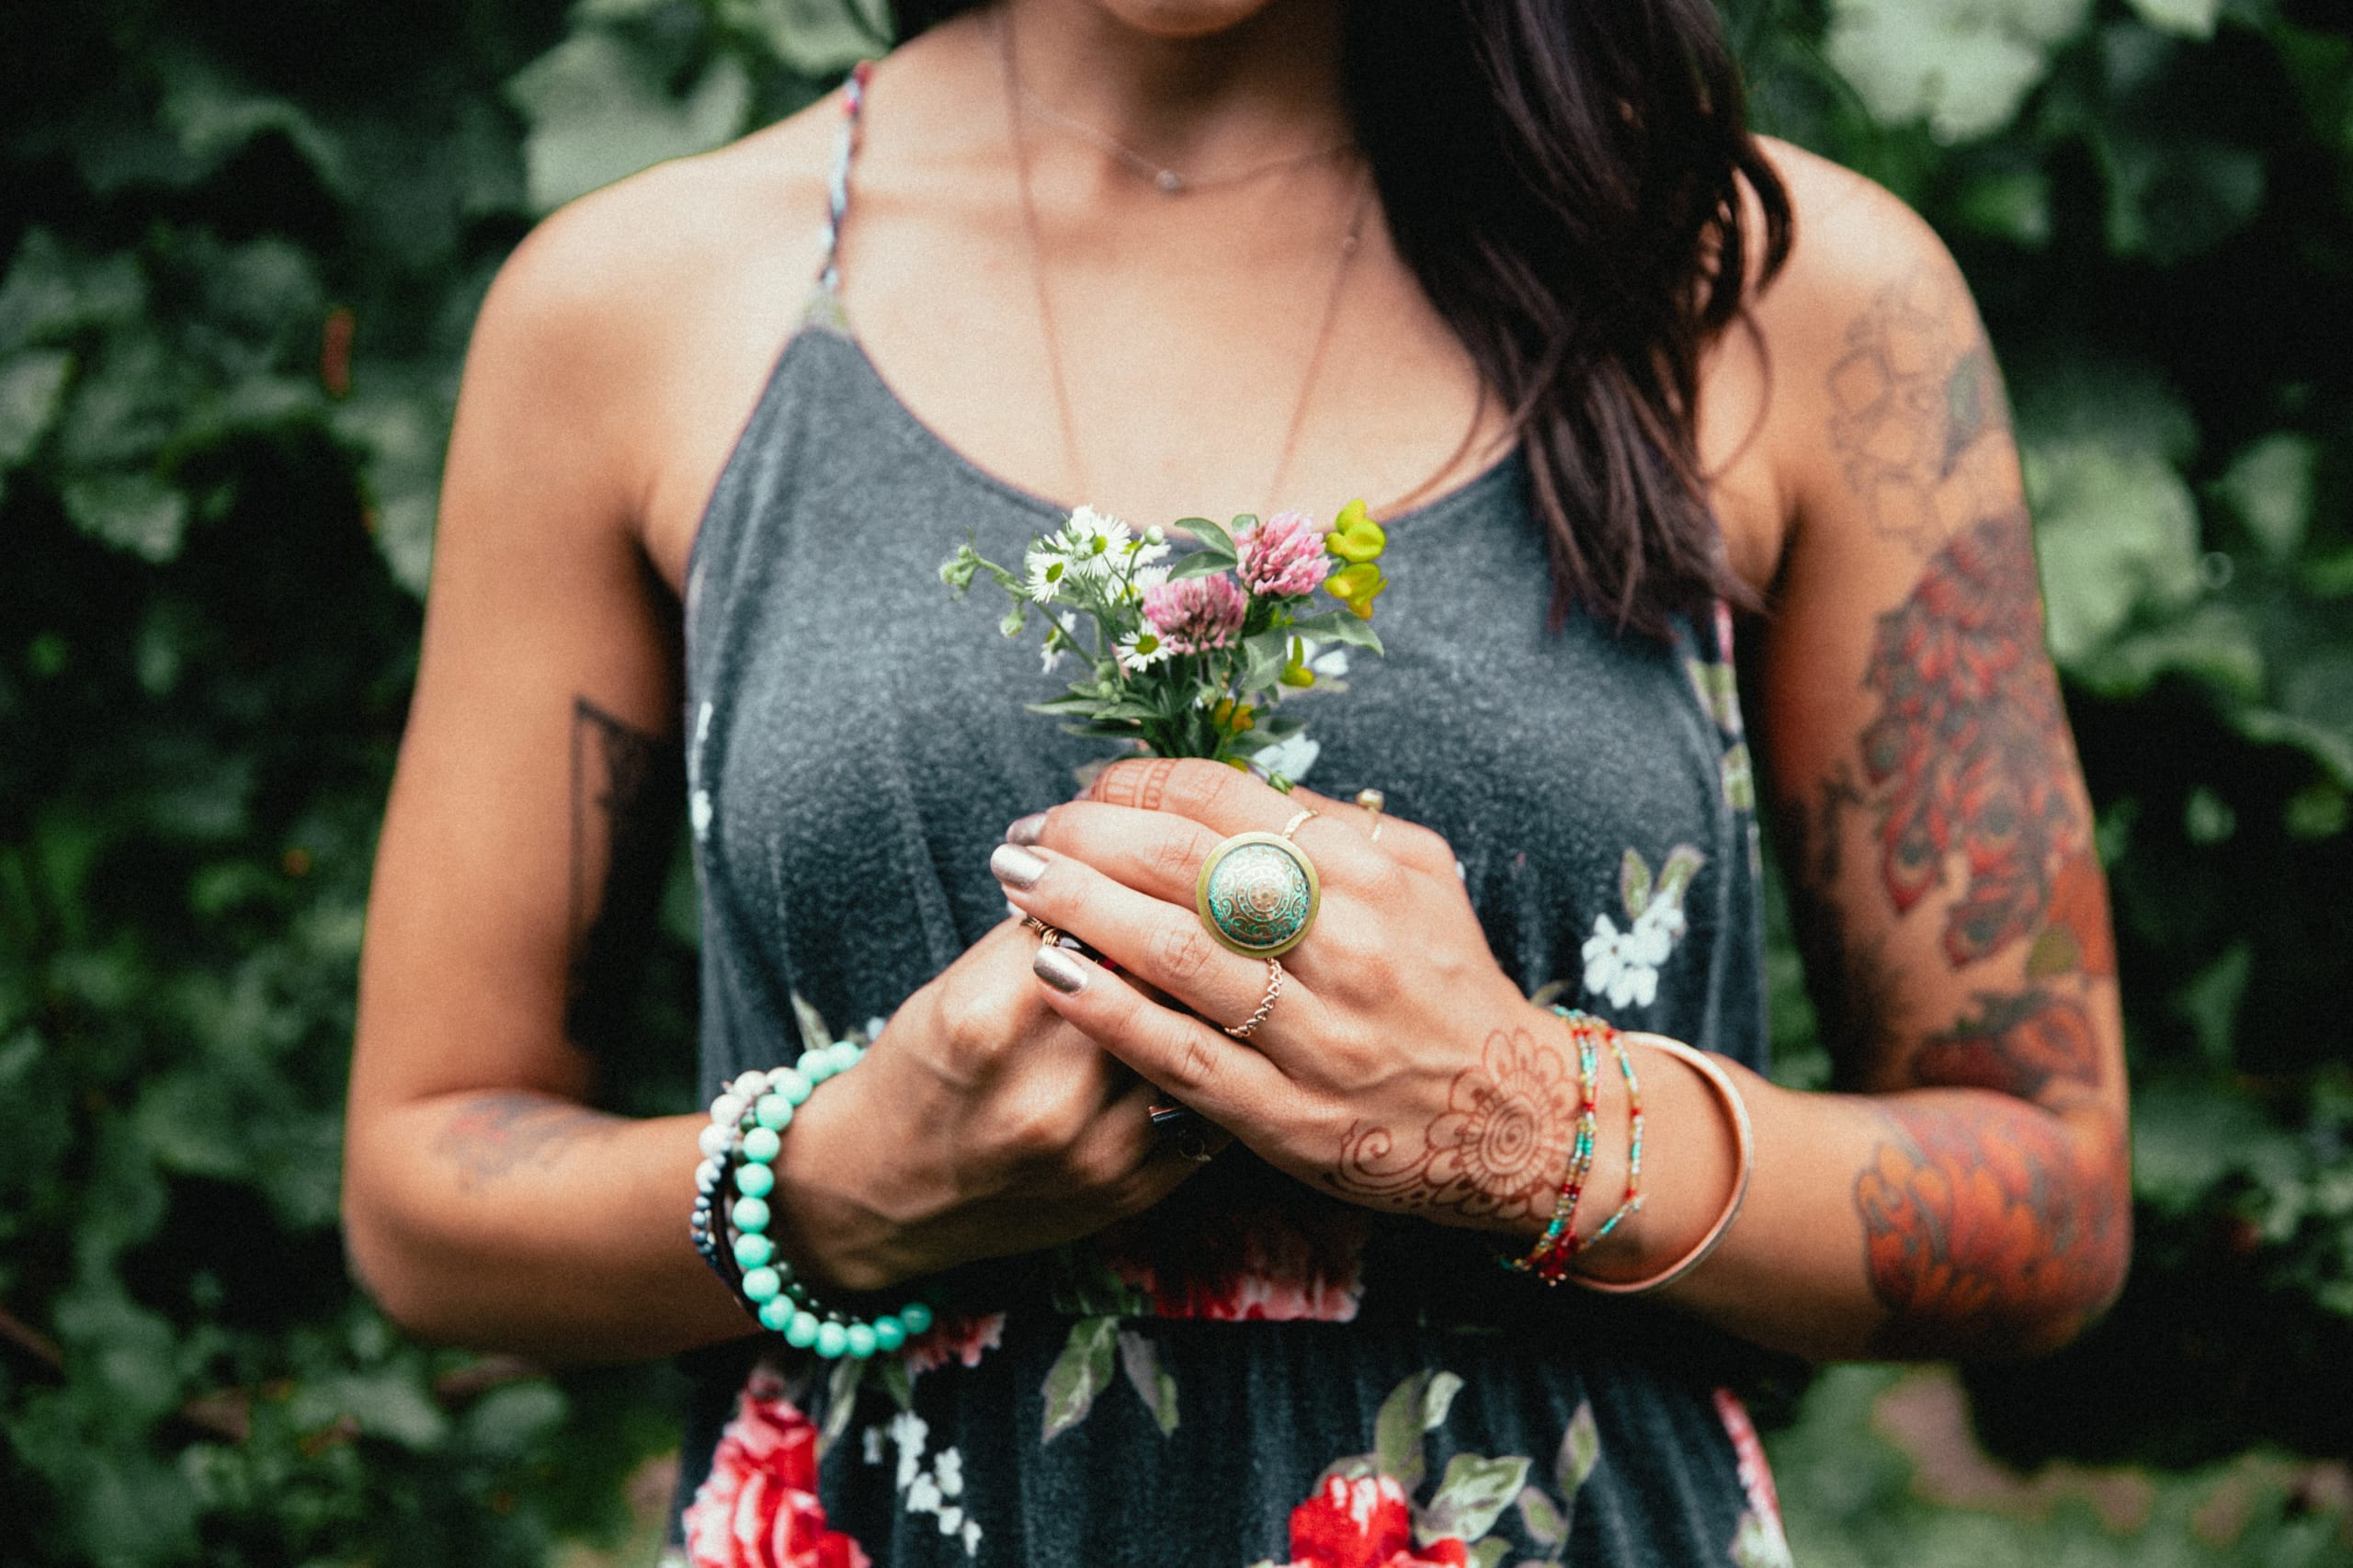 tattooes woman holding flowers